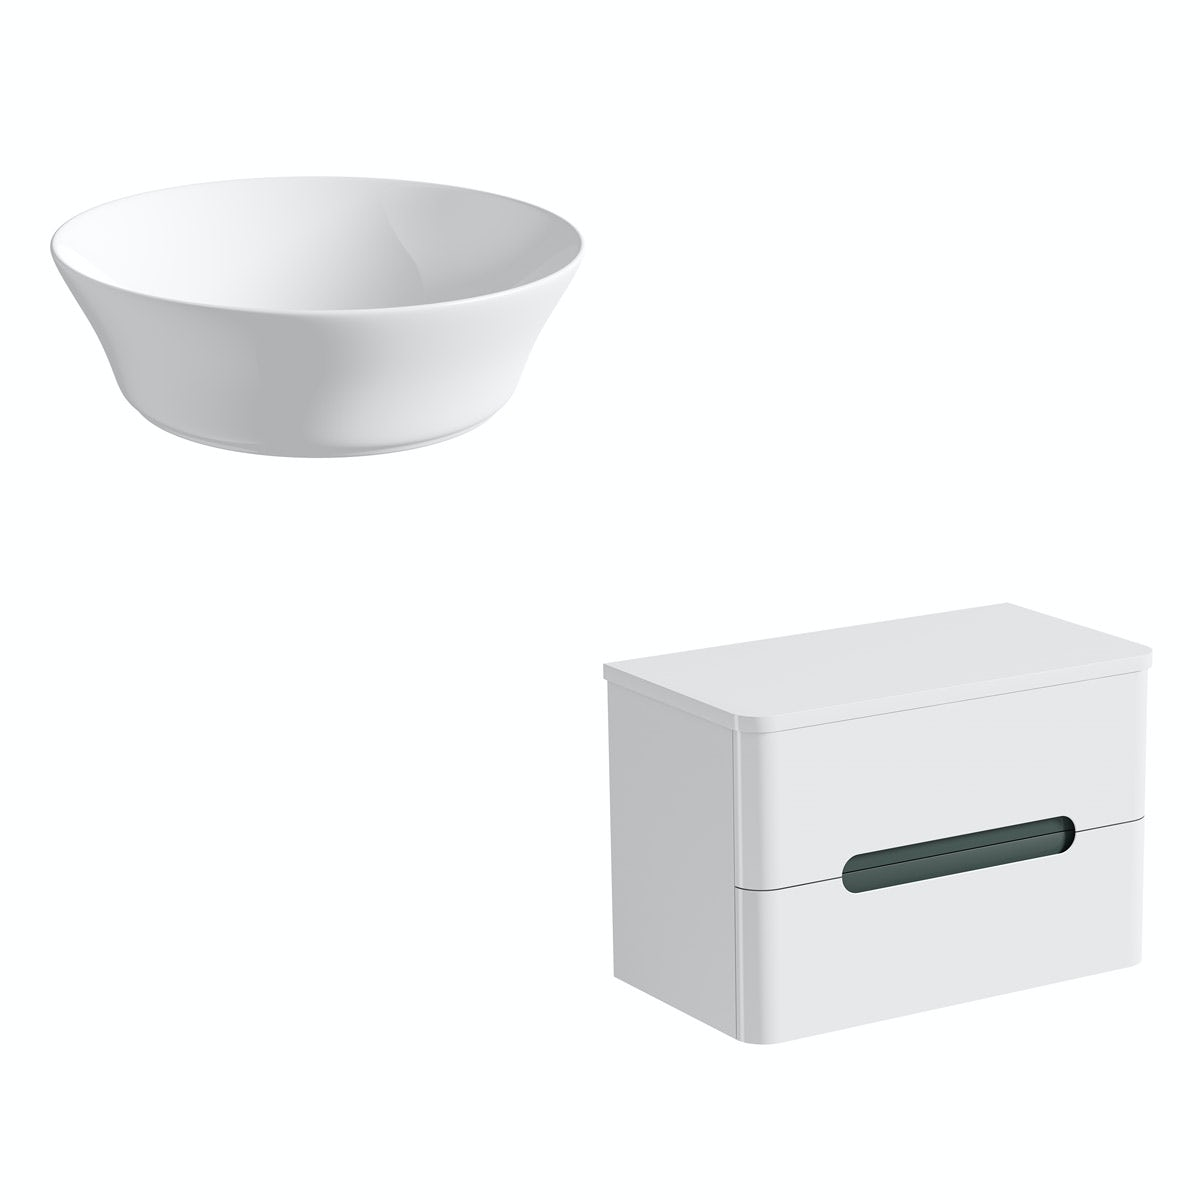 Mode Ellis slate wall hung countertop drawer unit 800mm with Bowery basin